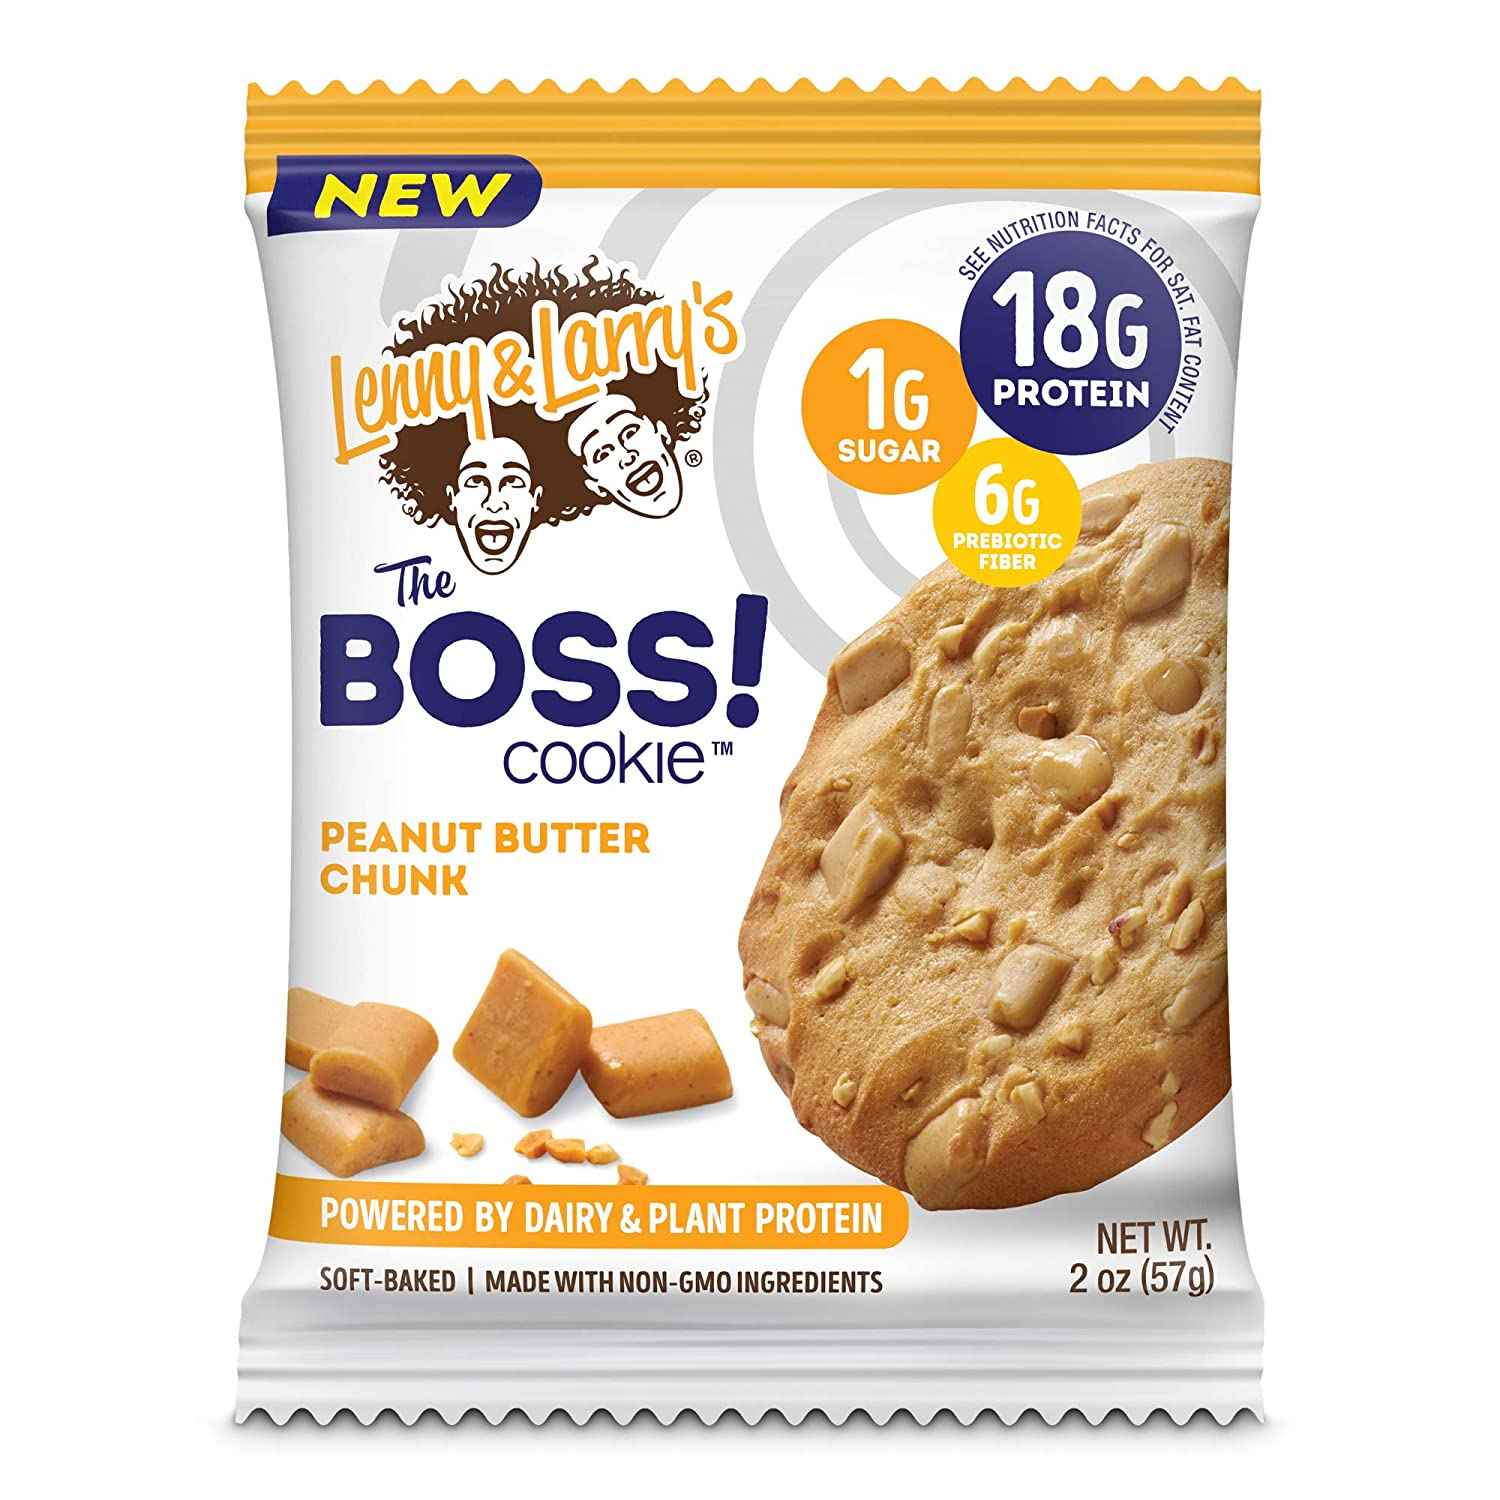 Lenny & Larry's The BOSS Cookie, Peanut Butter Chunk, 2 oz, 18g Dairy & Plant Protein, 1g Sugar, 6g Fiber, 1g Net Carbs - 12 Count